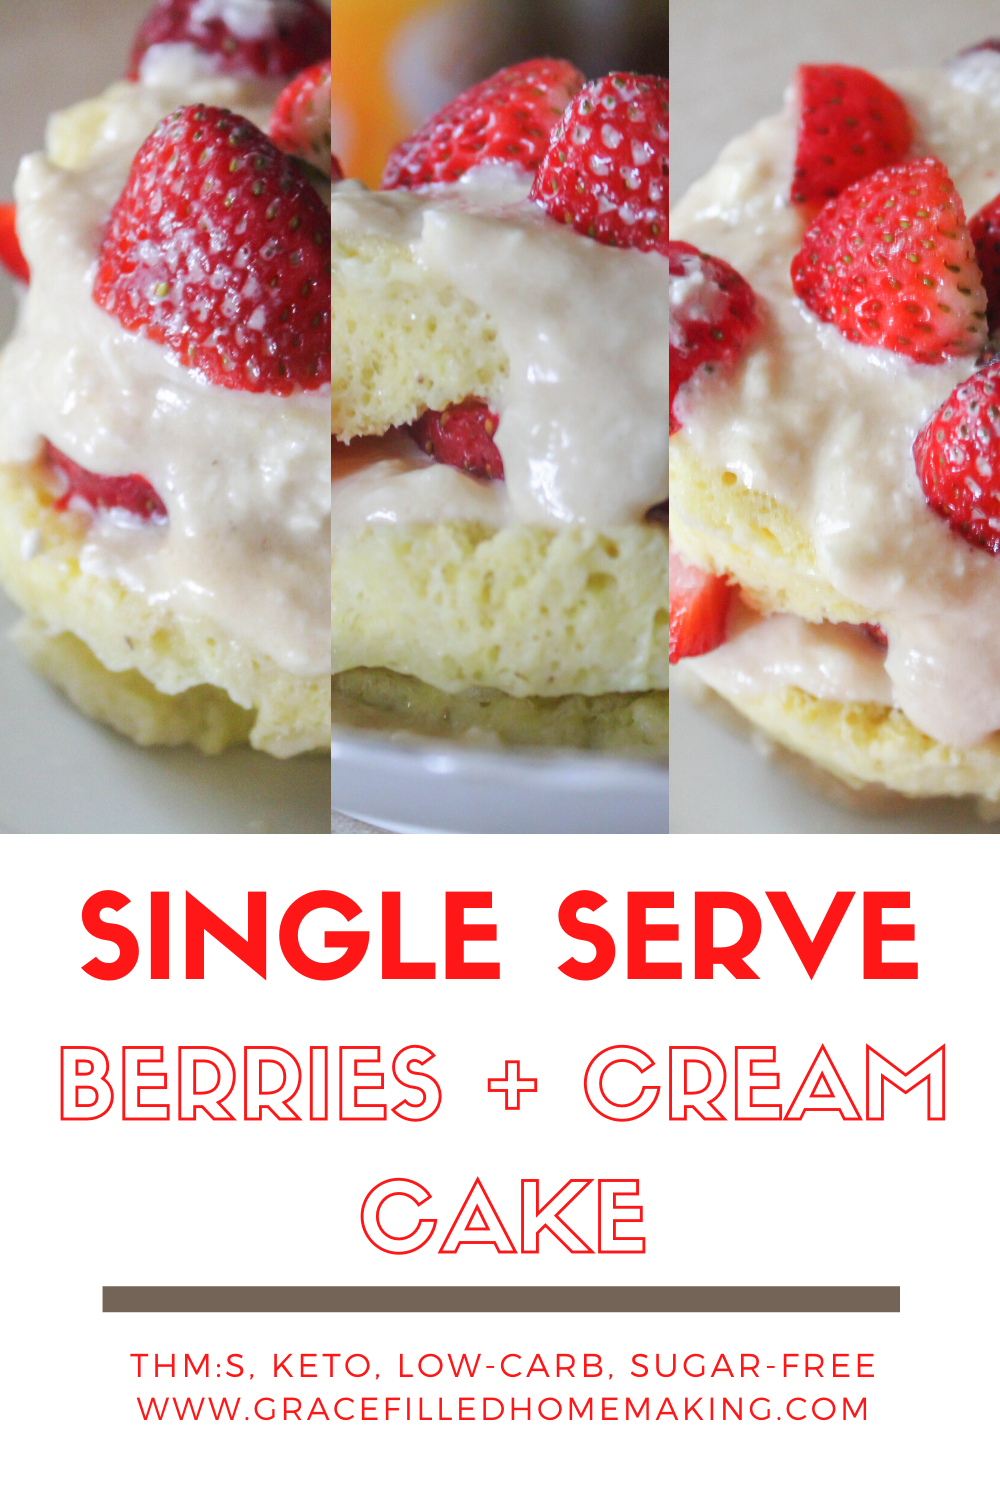 My single serve berries and cream cake is a great summer dessert for one! A spongy cake topped by a cream cheese icing and fresh berries. Yum!